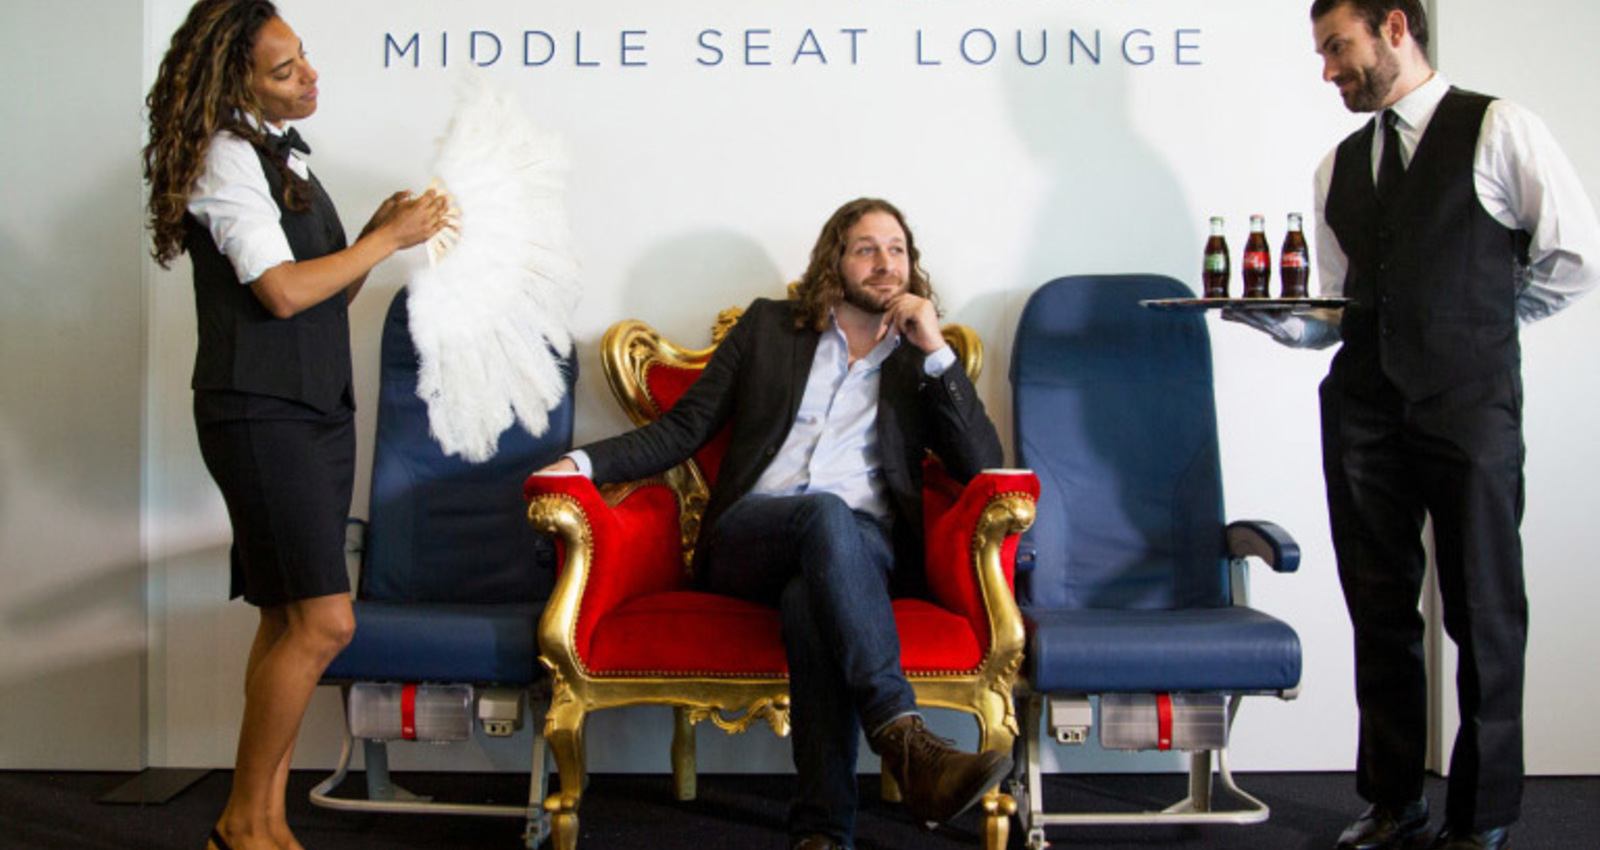 Middle Seat Lounge